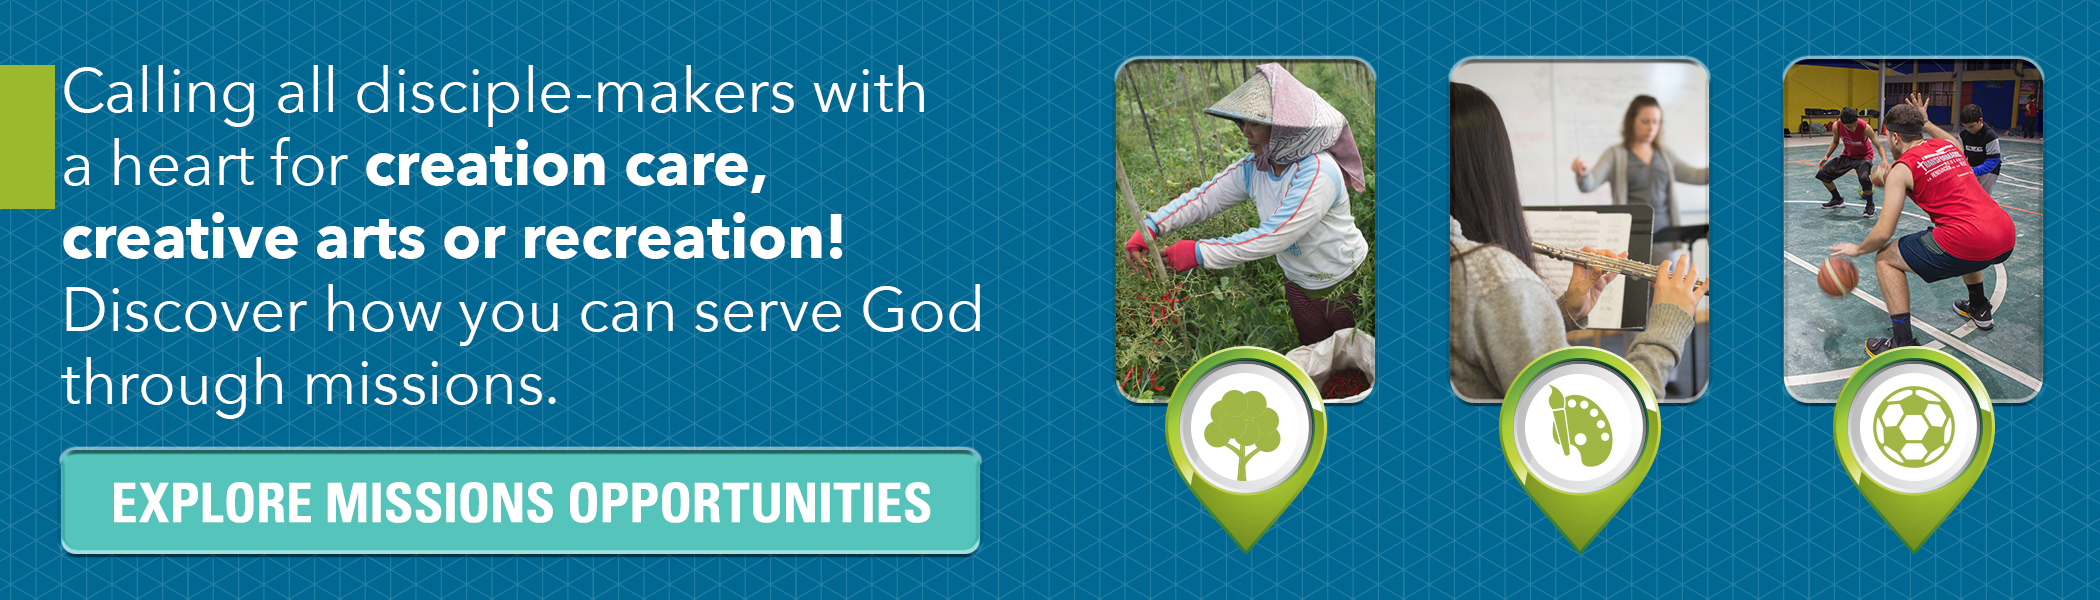 Calling all disciple-makers with a heart for creation care, creative arts or recreation! Discover how you can serve God through missions. Click here.